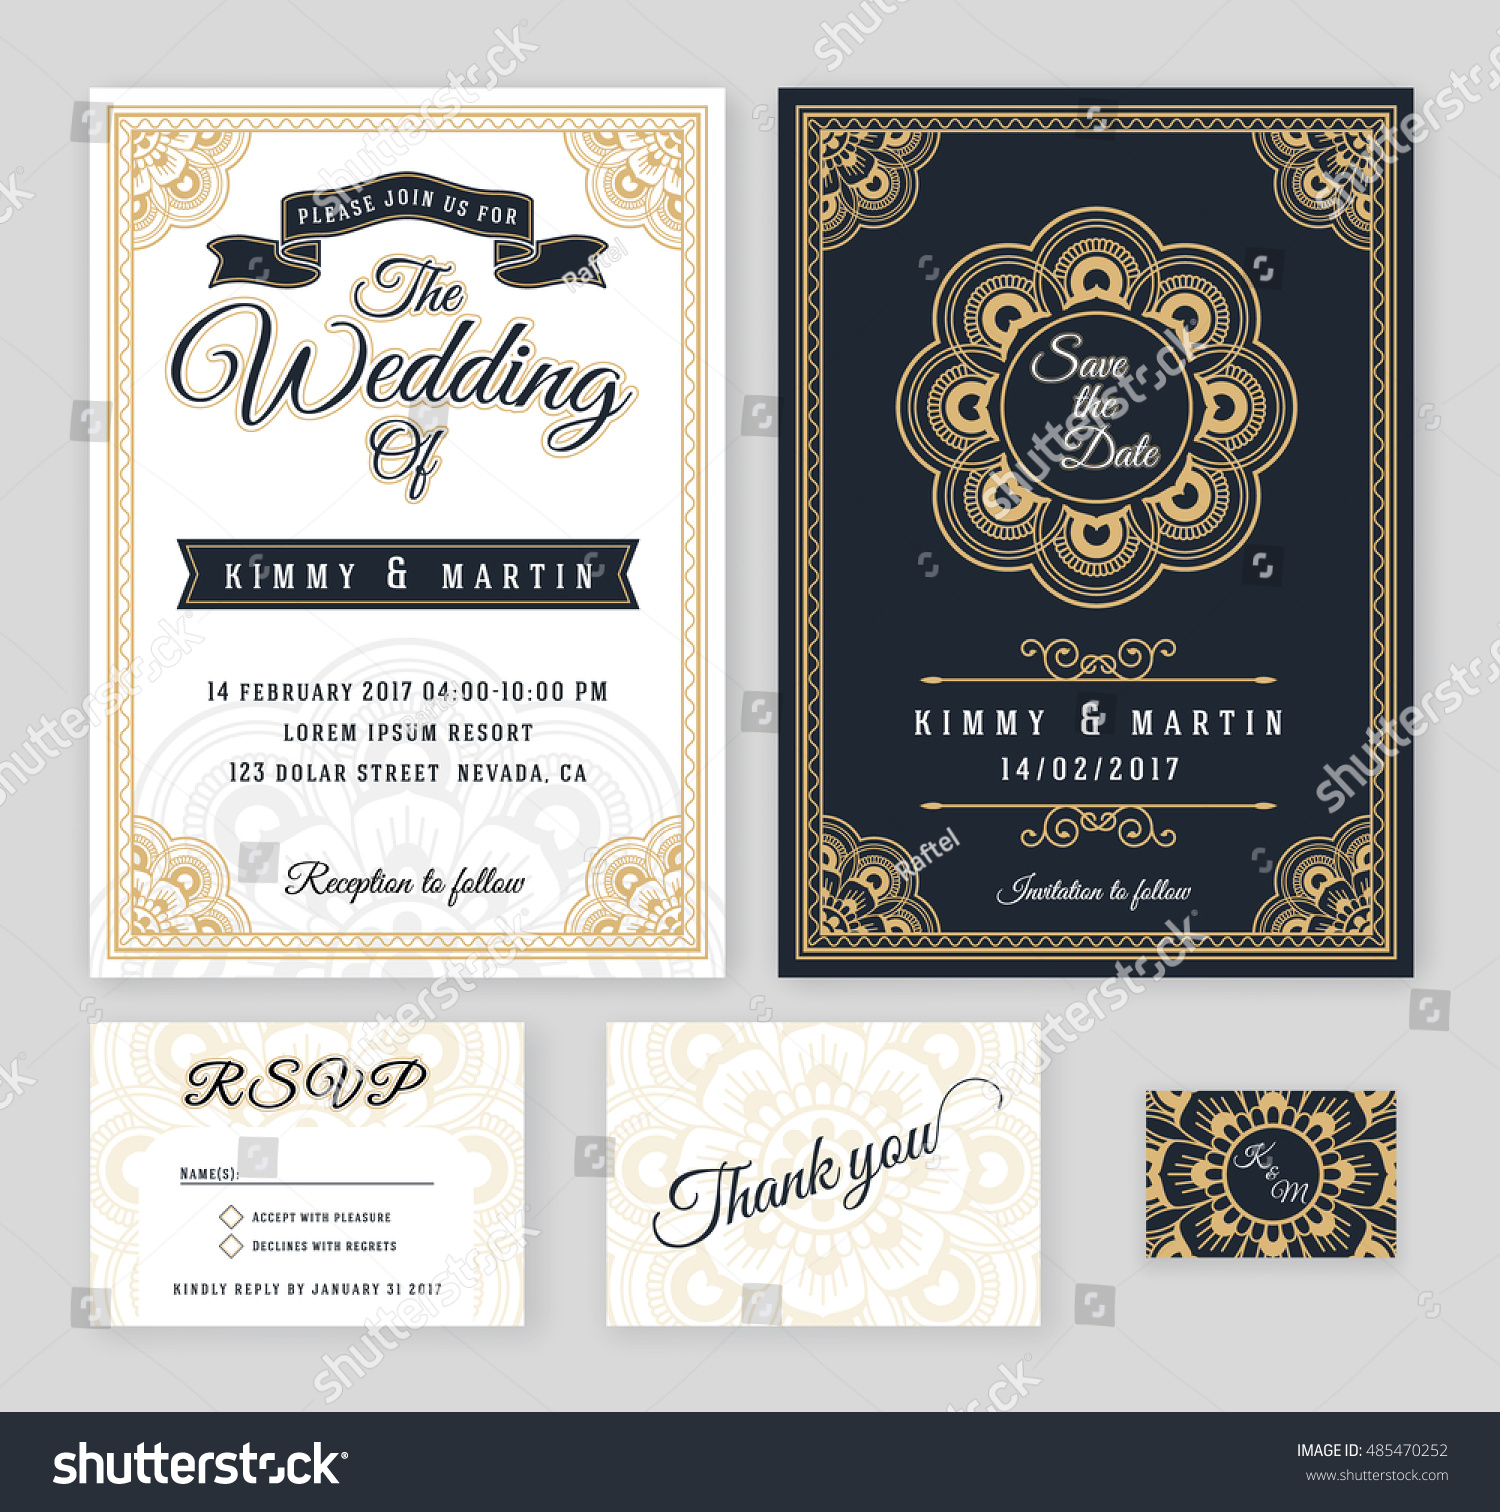 Vintage wedding invitation mehndi mandala design stock vector vintage wedding invitation mehndi mandala design sets include invitation card save the date rsvp stopboris Image collections